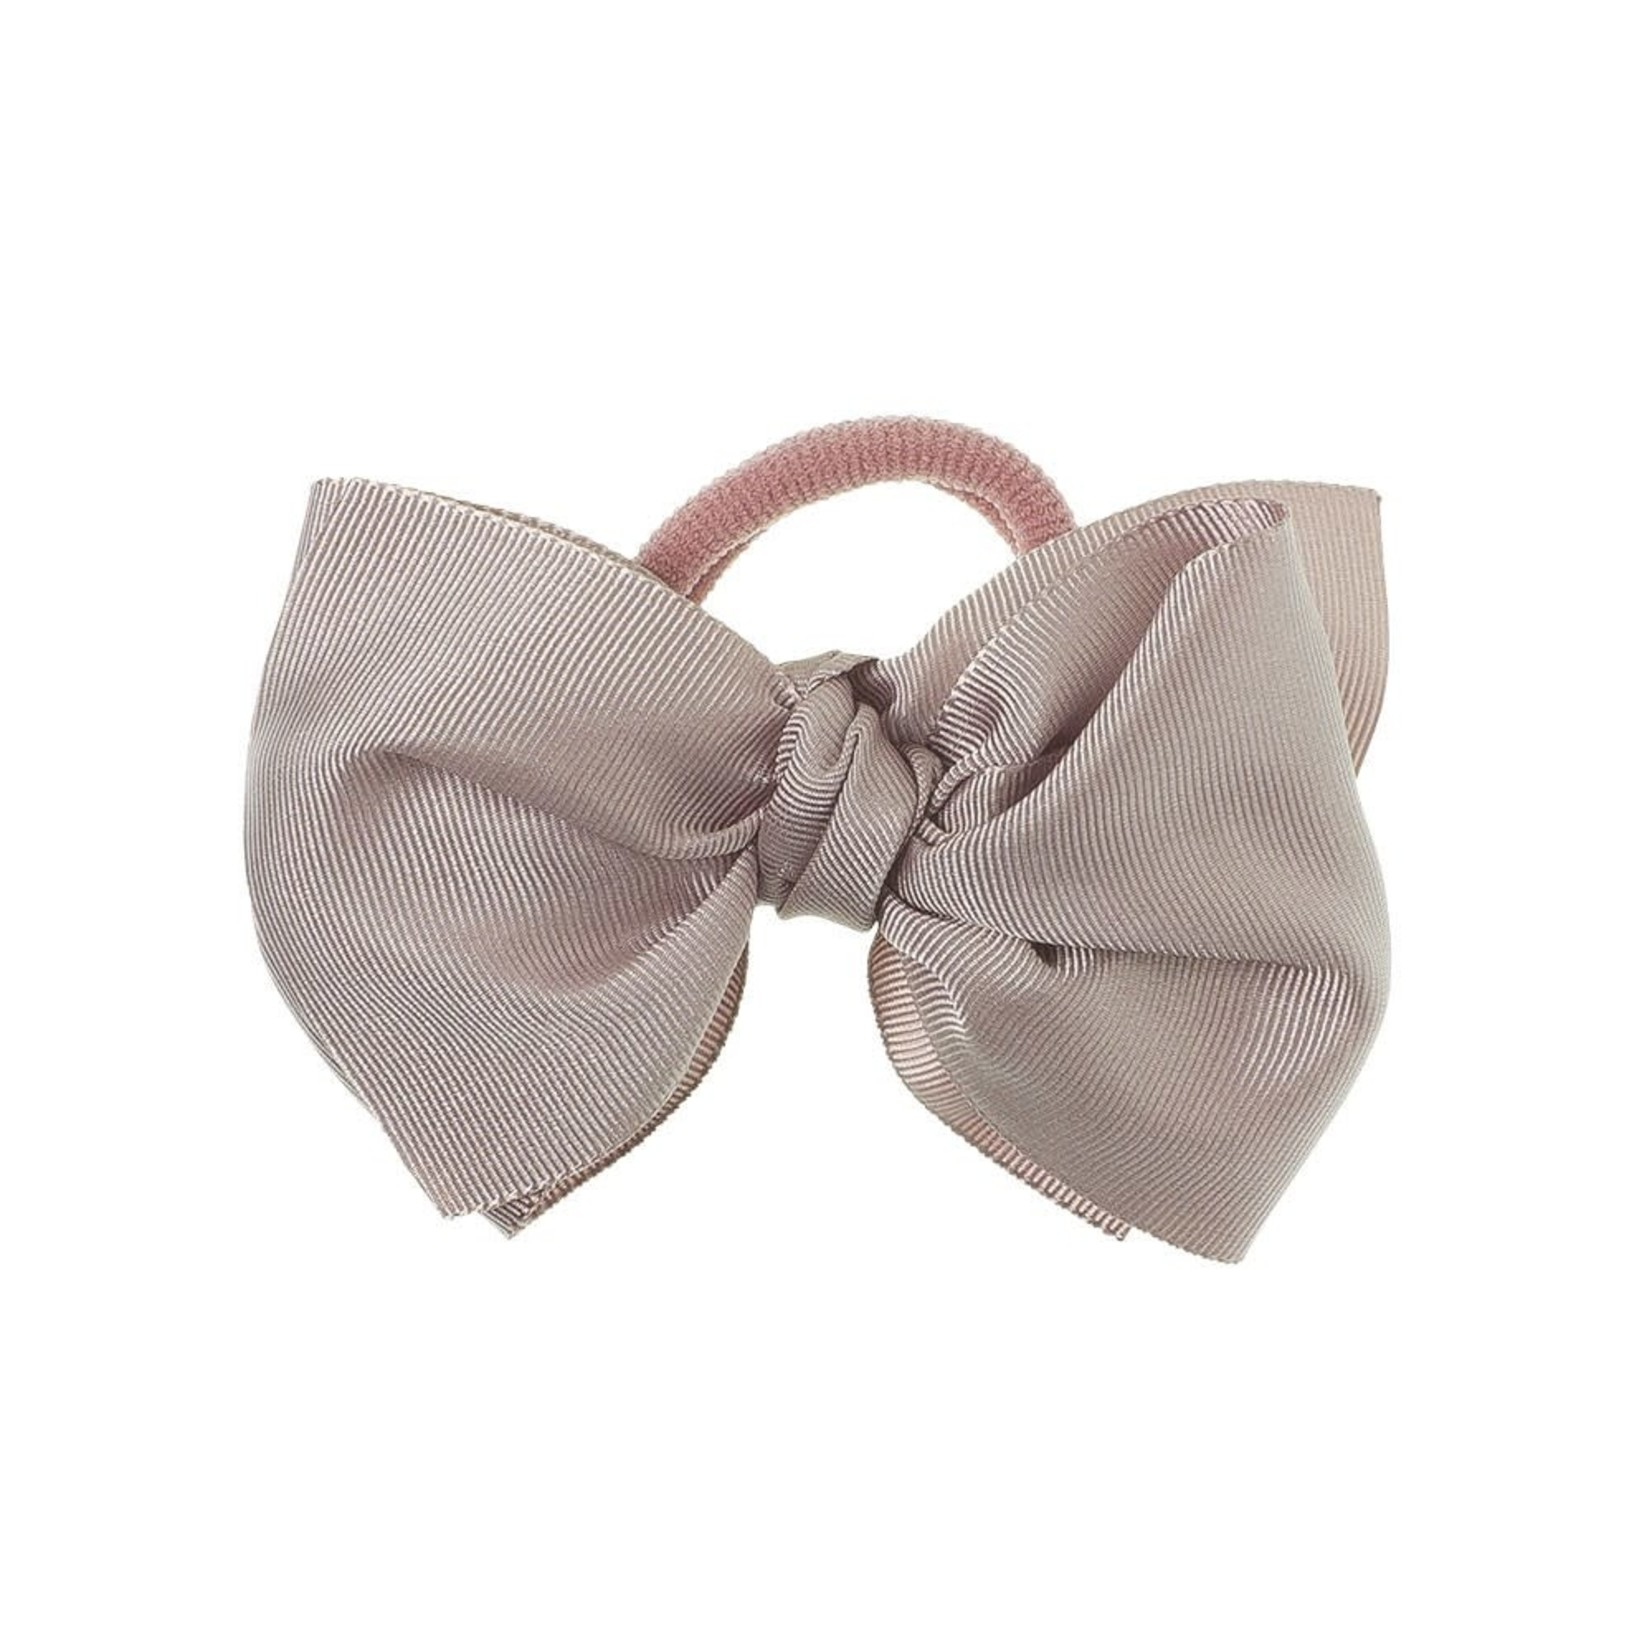 Siena Copy of Hair Bow - Light Pink